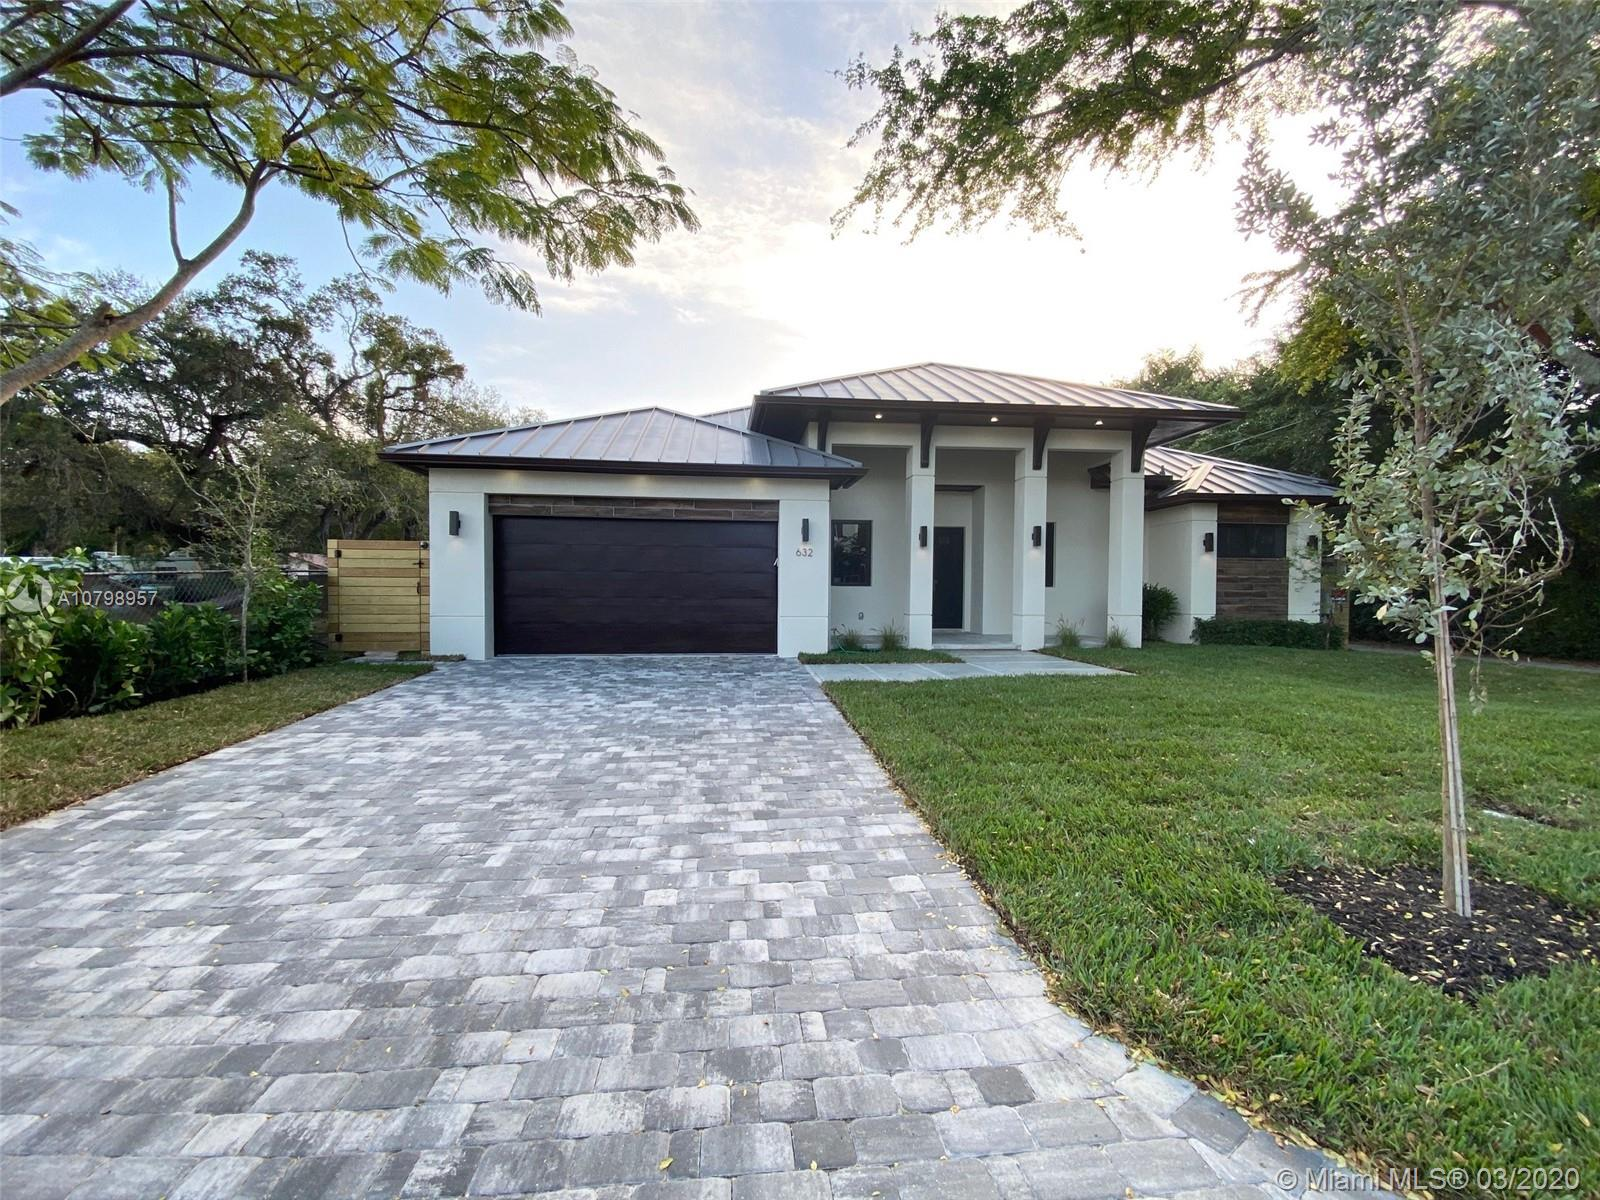 Brand New Construction! This magnificent modern custom home is located on a corner lot of Riverside Park. Minutes to Las Olas, Downtown Fort Lauderdale, the airport and I-95. With almost 2,500 sq/ft under air and total sq/ft of 3,507, this home consists of 4 bedrooms 3.5 baths, oversized 2-car garage and huge covered patio overlooking the pool & spa. Home is completely fenced in, has high ceilings of 11ft, 24 gauge metal roof,  and tons of natural light. The open concept of the living room, dining room, and kitchen make this home great for entertaining and family gatherings. The custom-built kitchen has quartz countertops, LG Smart WiFi enable appliances, oversized kitchen island and walk-in pantry. Great home & great location! To be completed in February 2020.